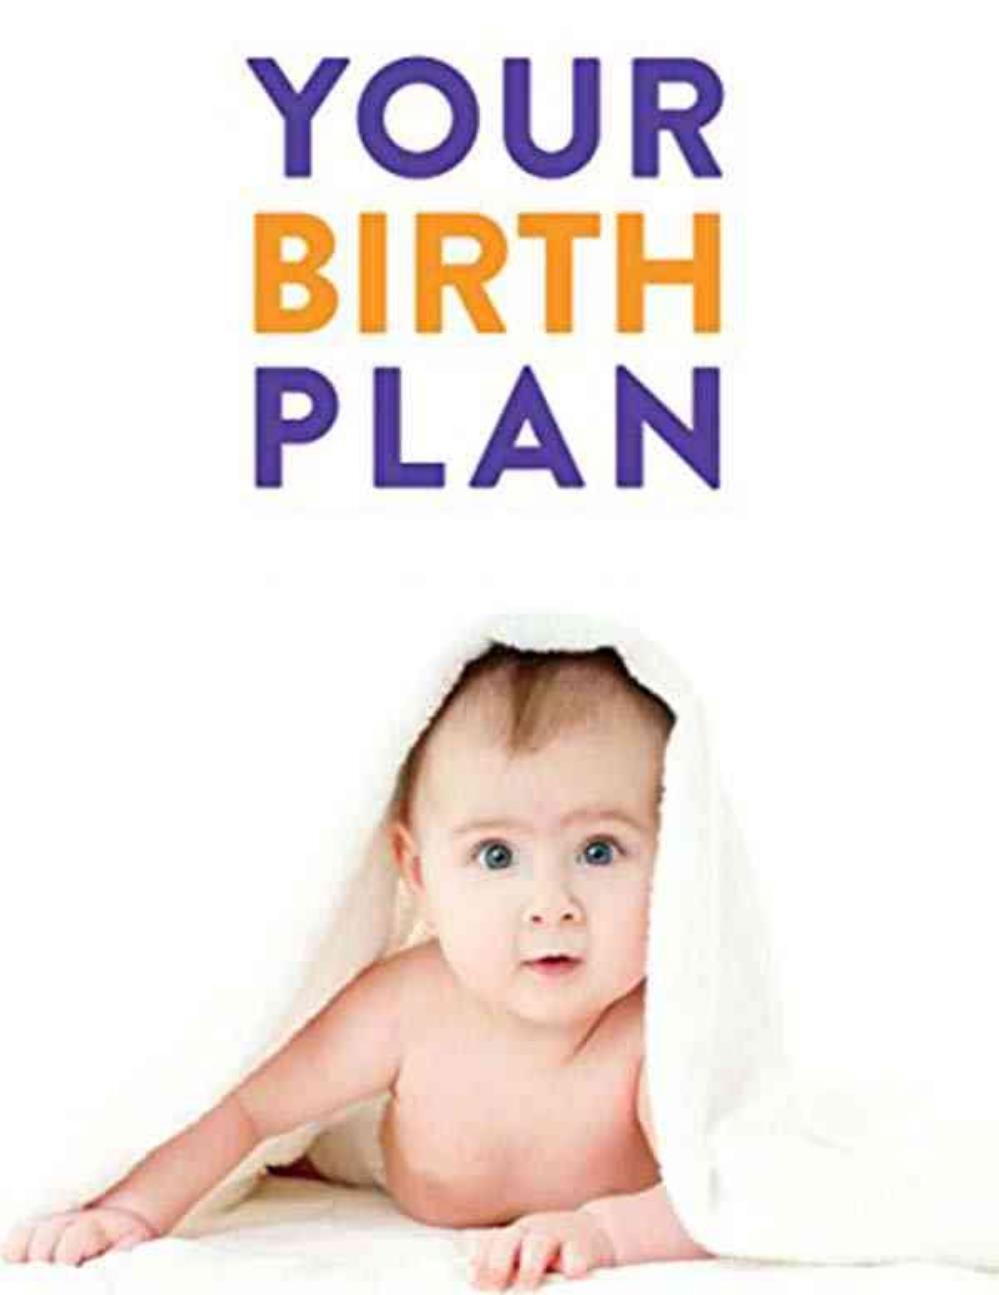 your birth plan